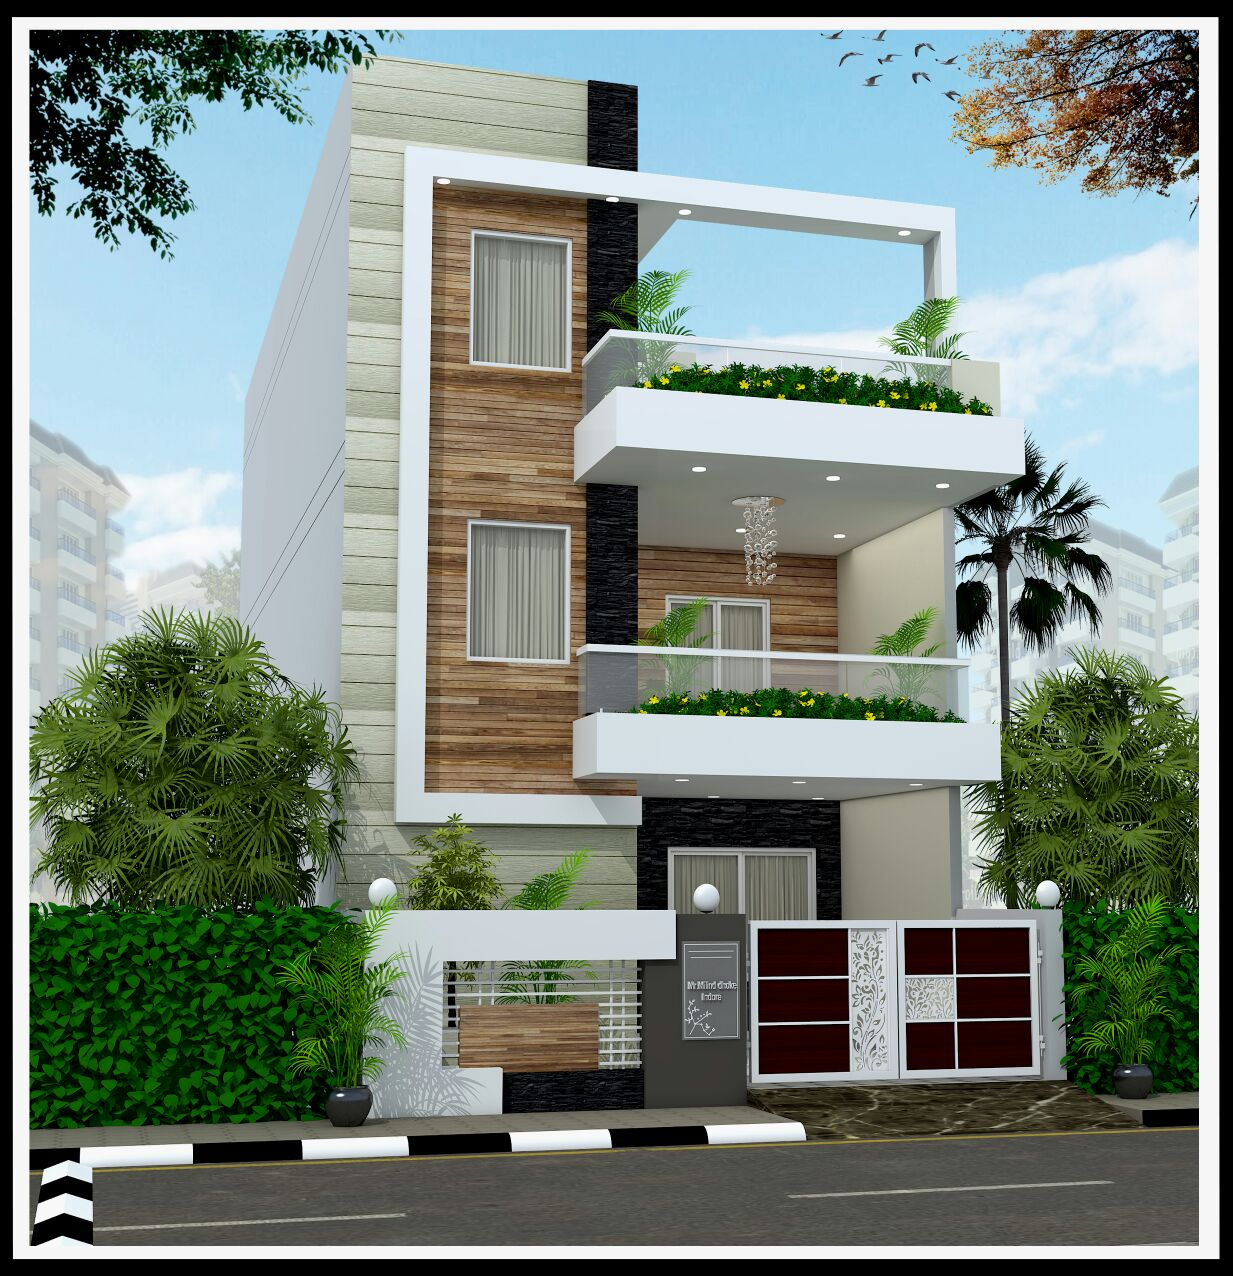 22 Feet By 45 Modern House Plan With 4 Bedrooms Acha Homes